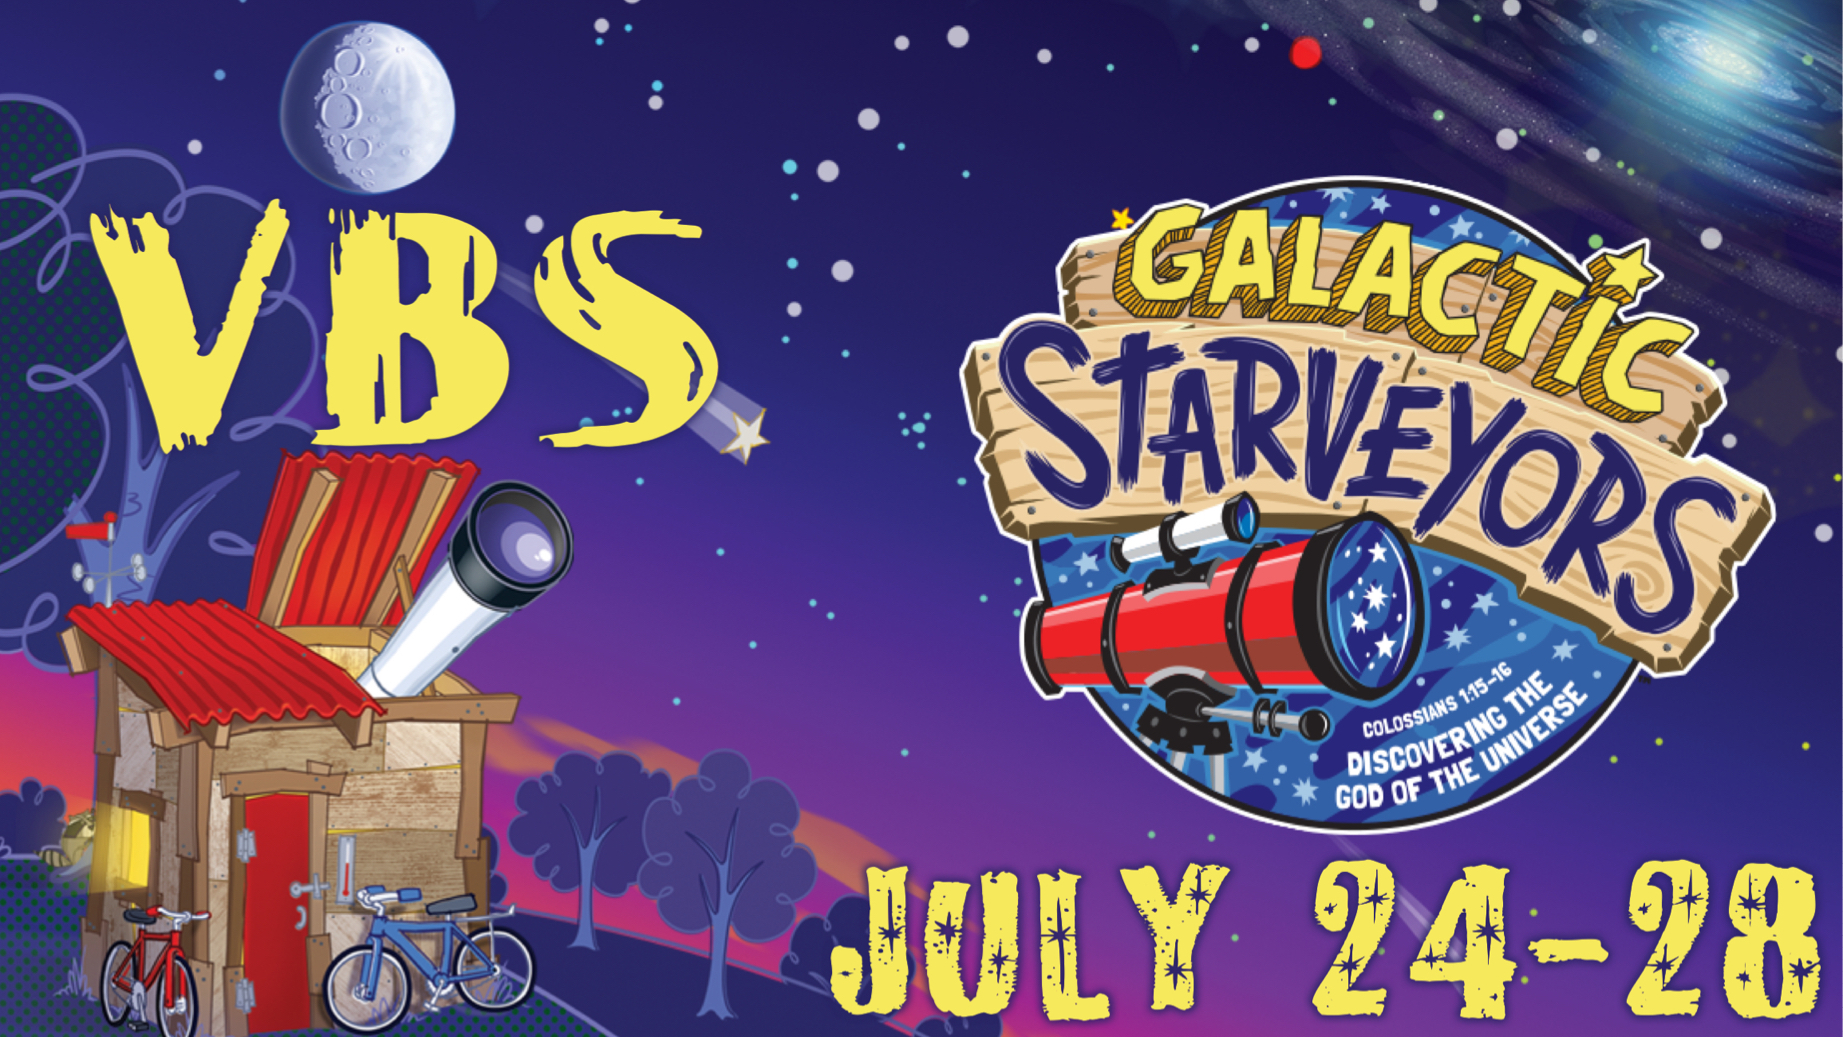 Pco vbs image